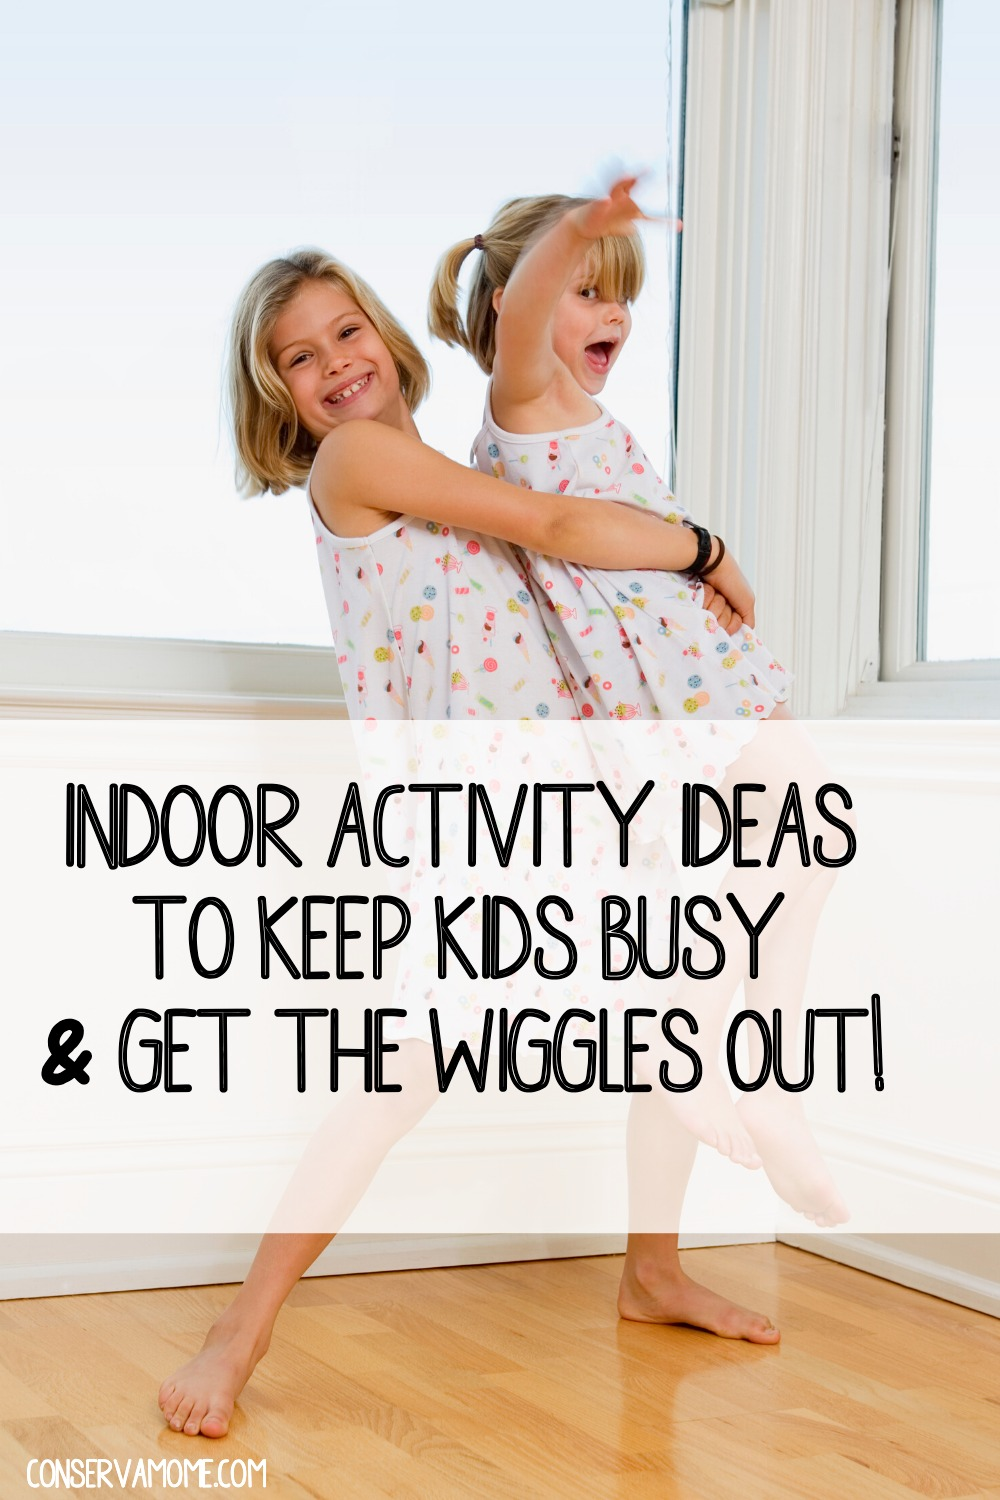 Indoor activity ideas to keep kids busy